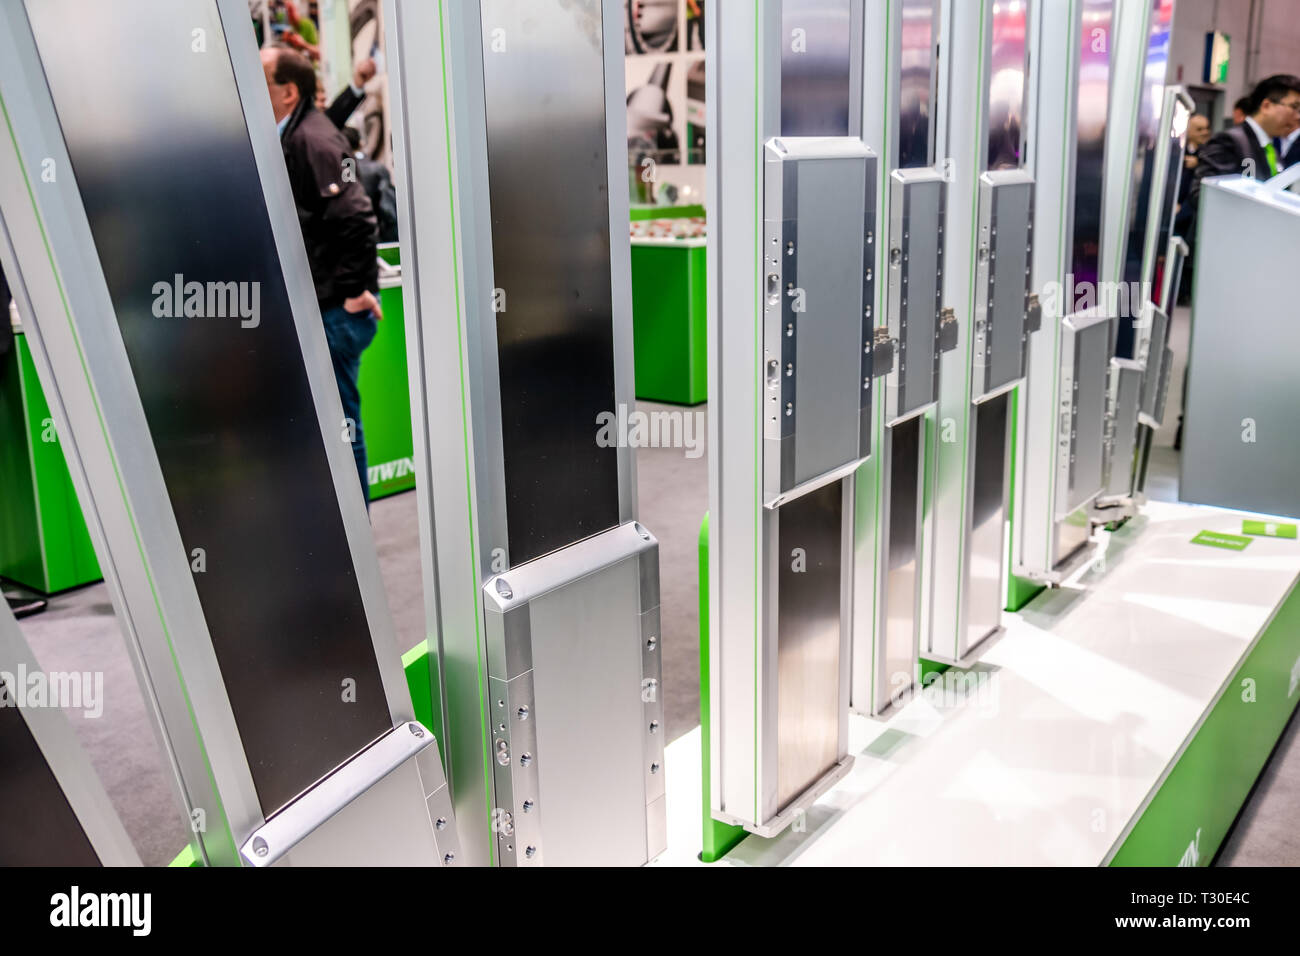 HANNOVER / GERMANY - APRIL 02 2019 : IBG is presenting their newest innovations at the Hannover Messe. - Stock Image